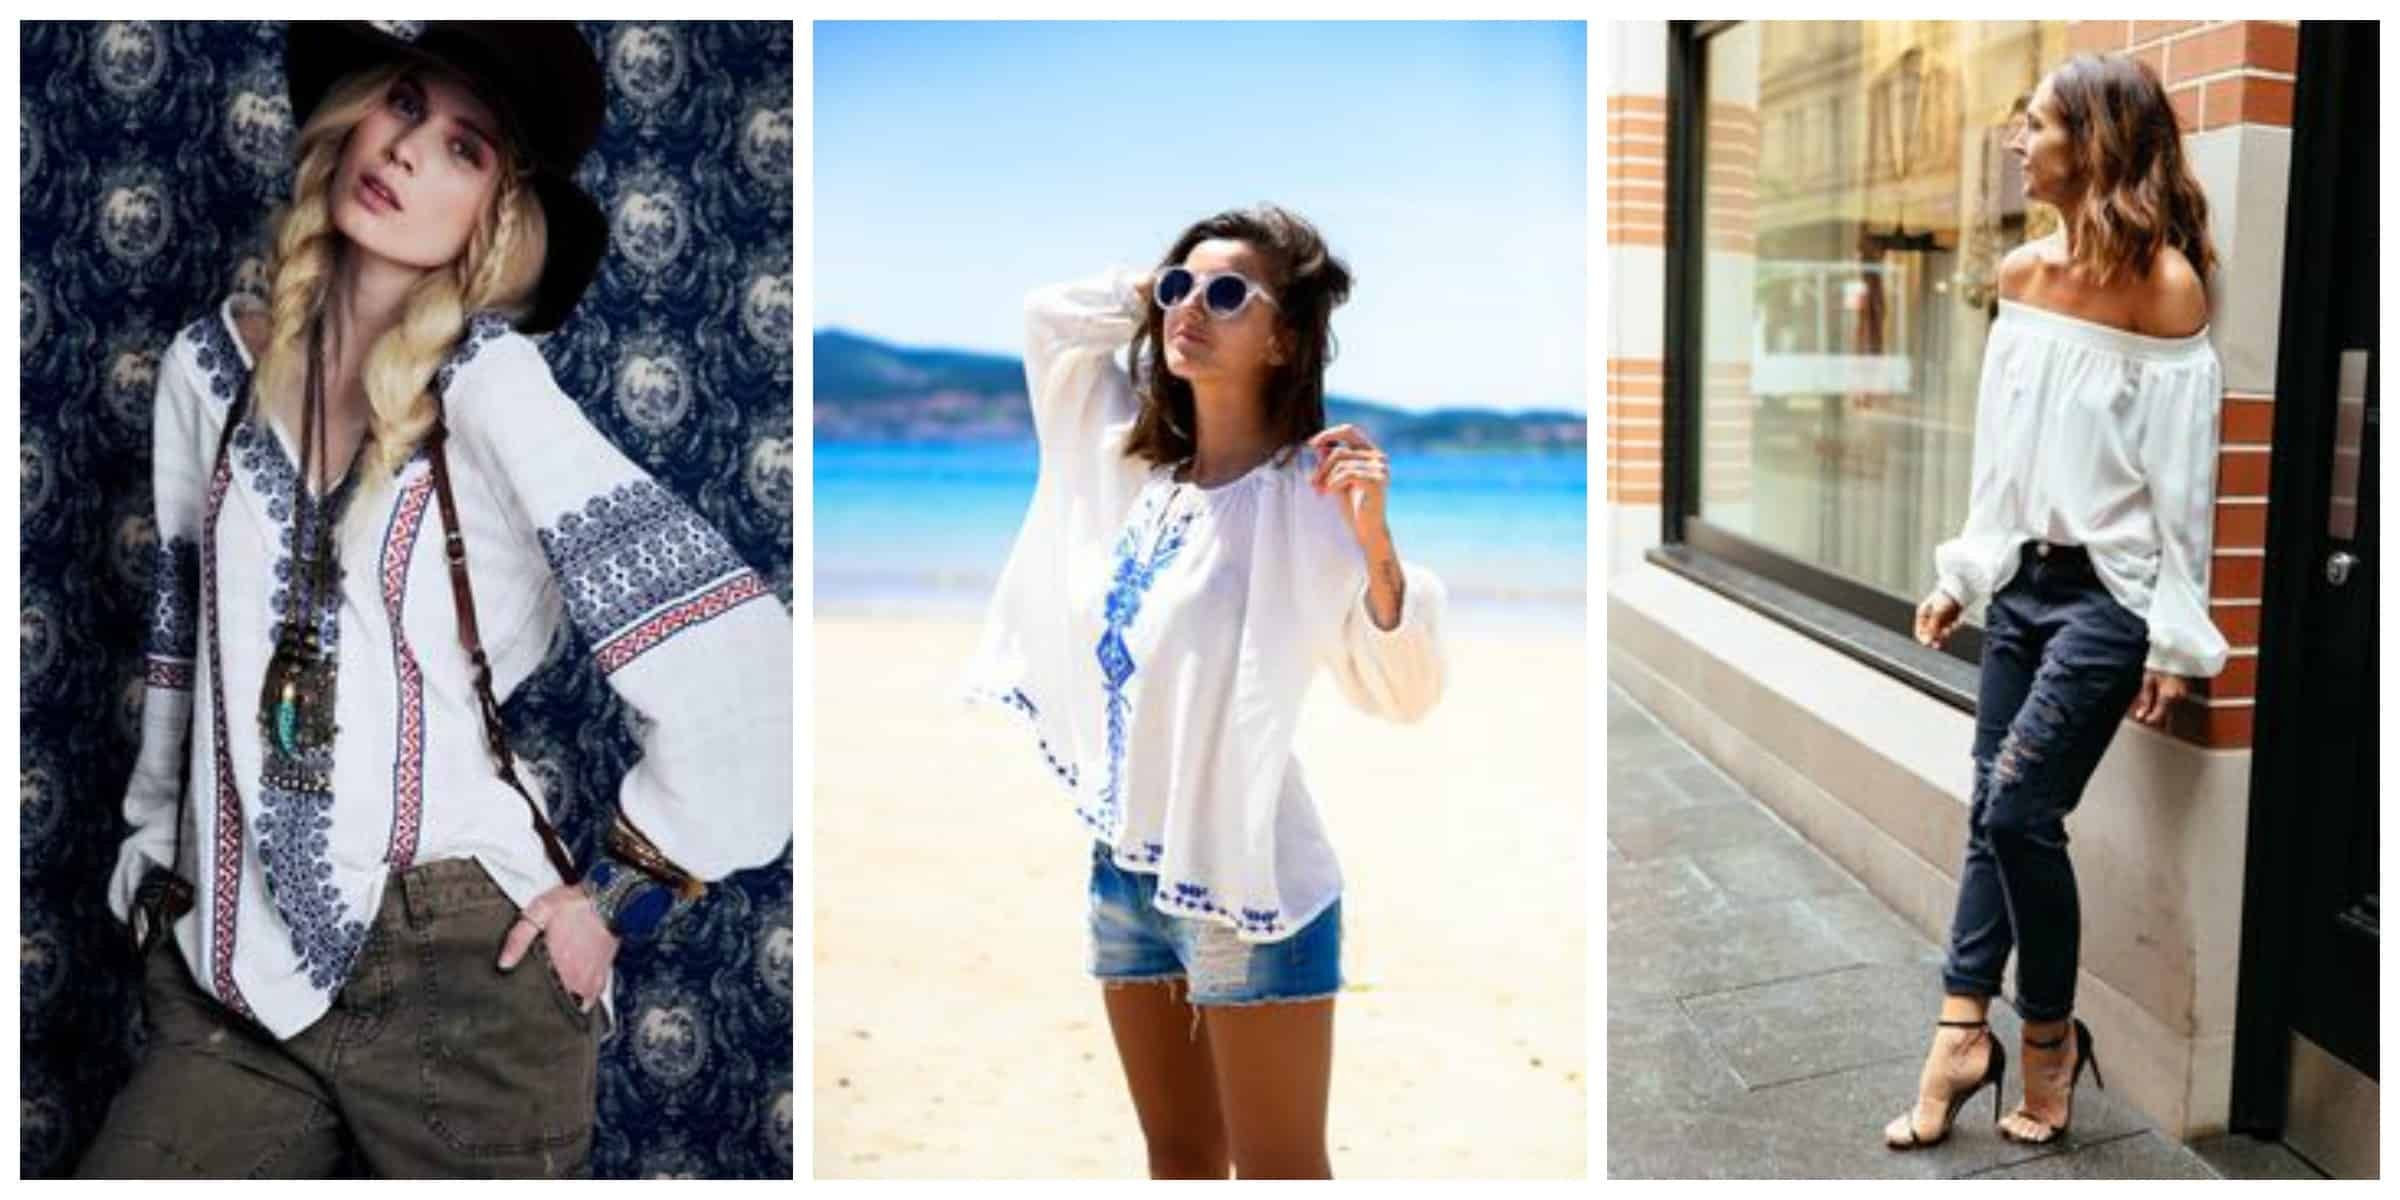 How to peasant wear tops in summer